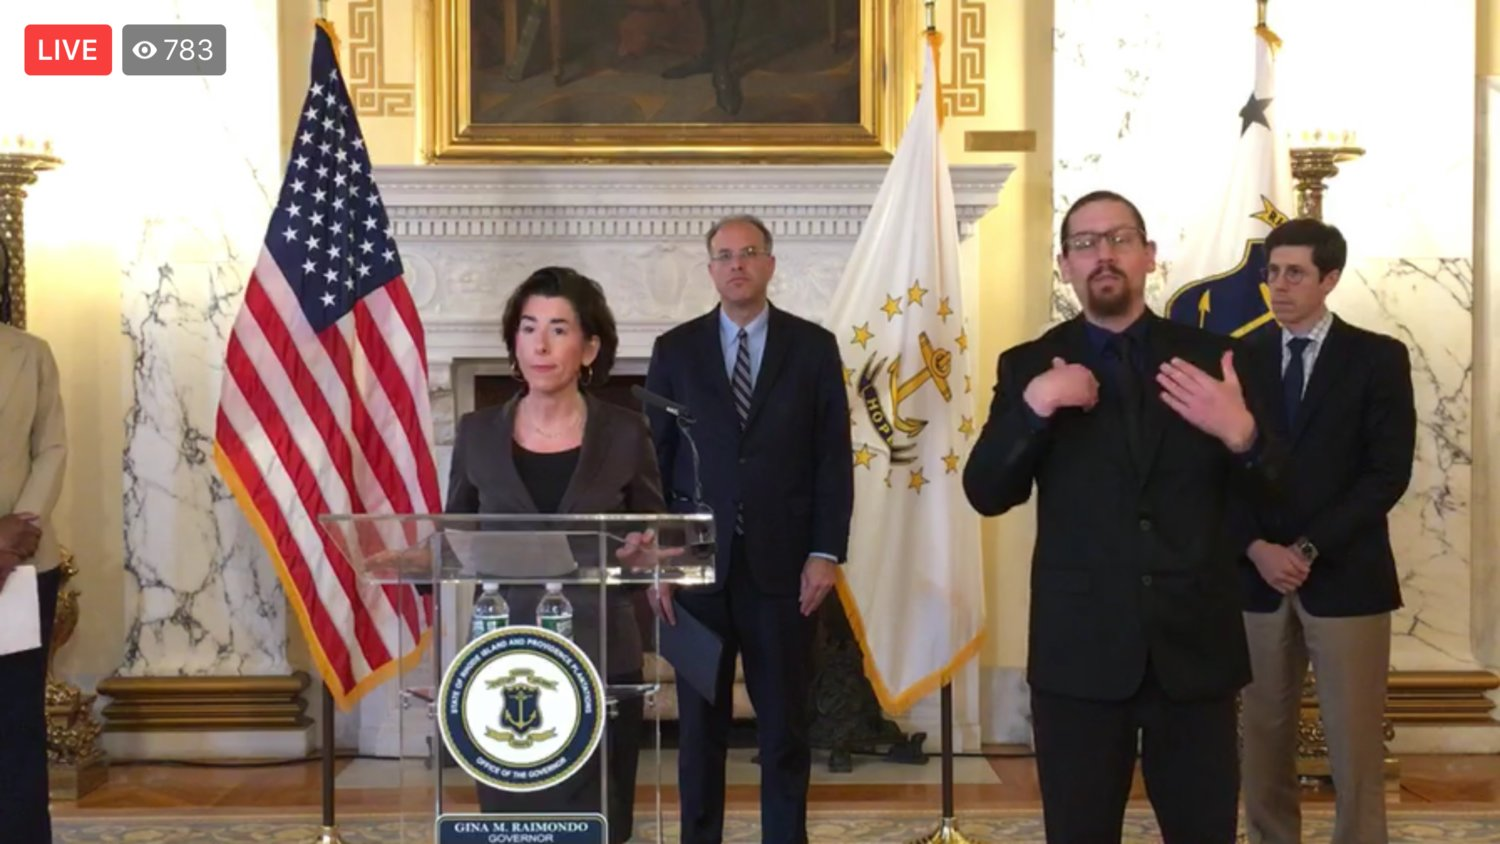 Gov. Gina Raimondo speaks during Saturday's daily briefing at the State House.